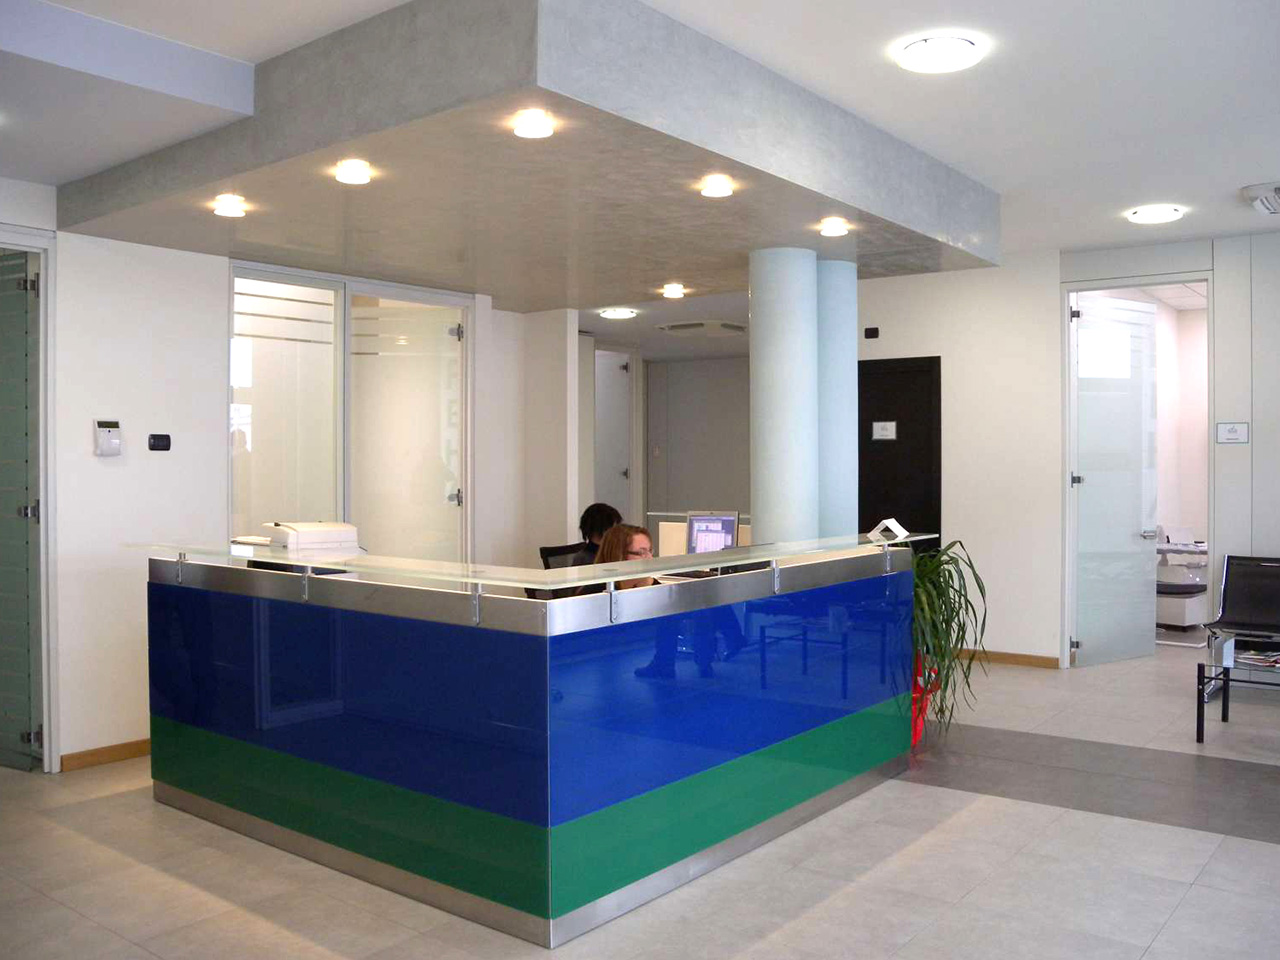 Development of outpatient clinic areas - Verona Italy 01